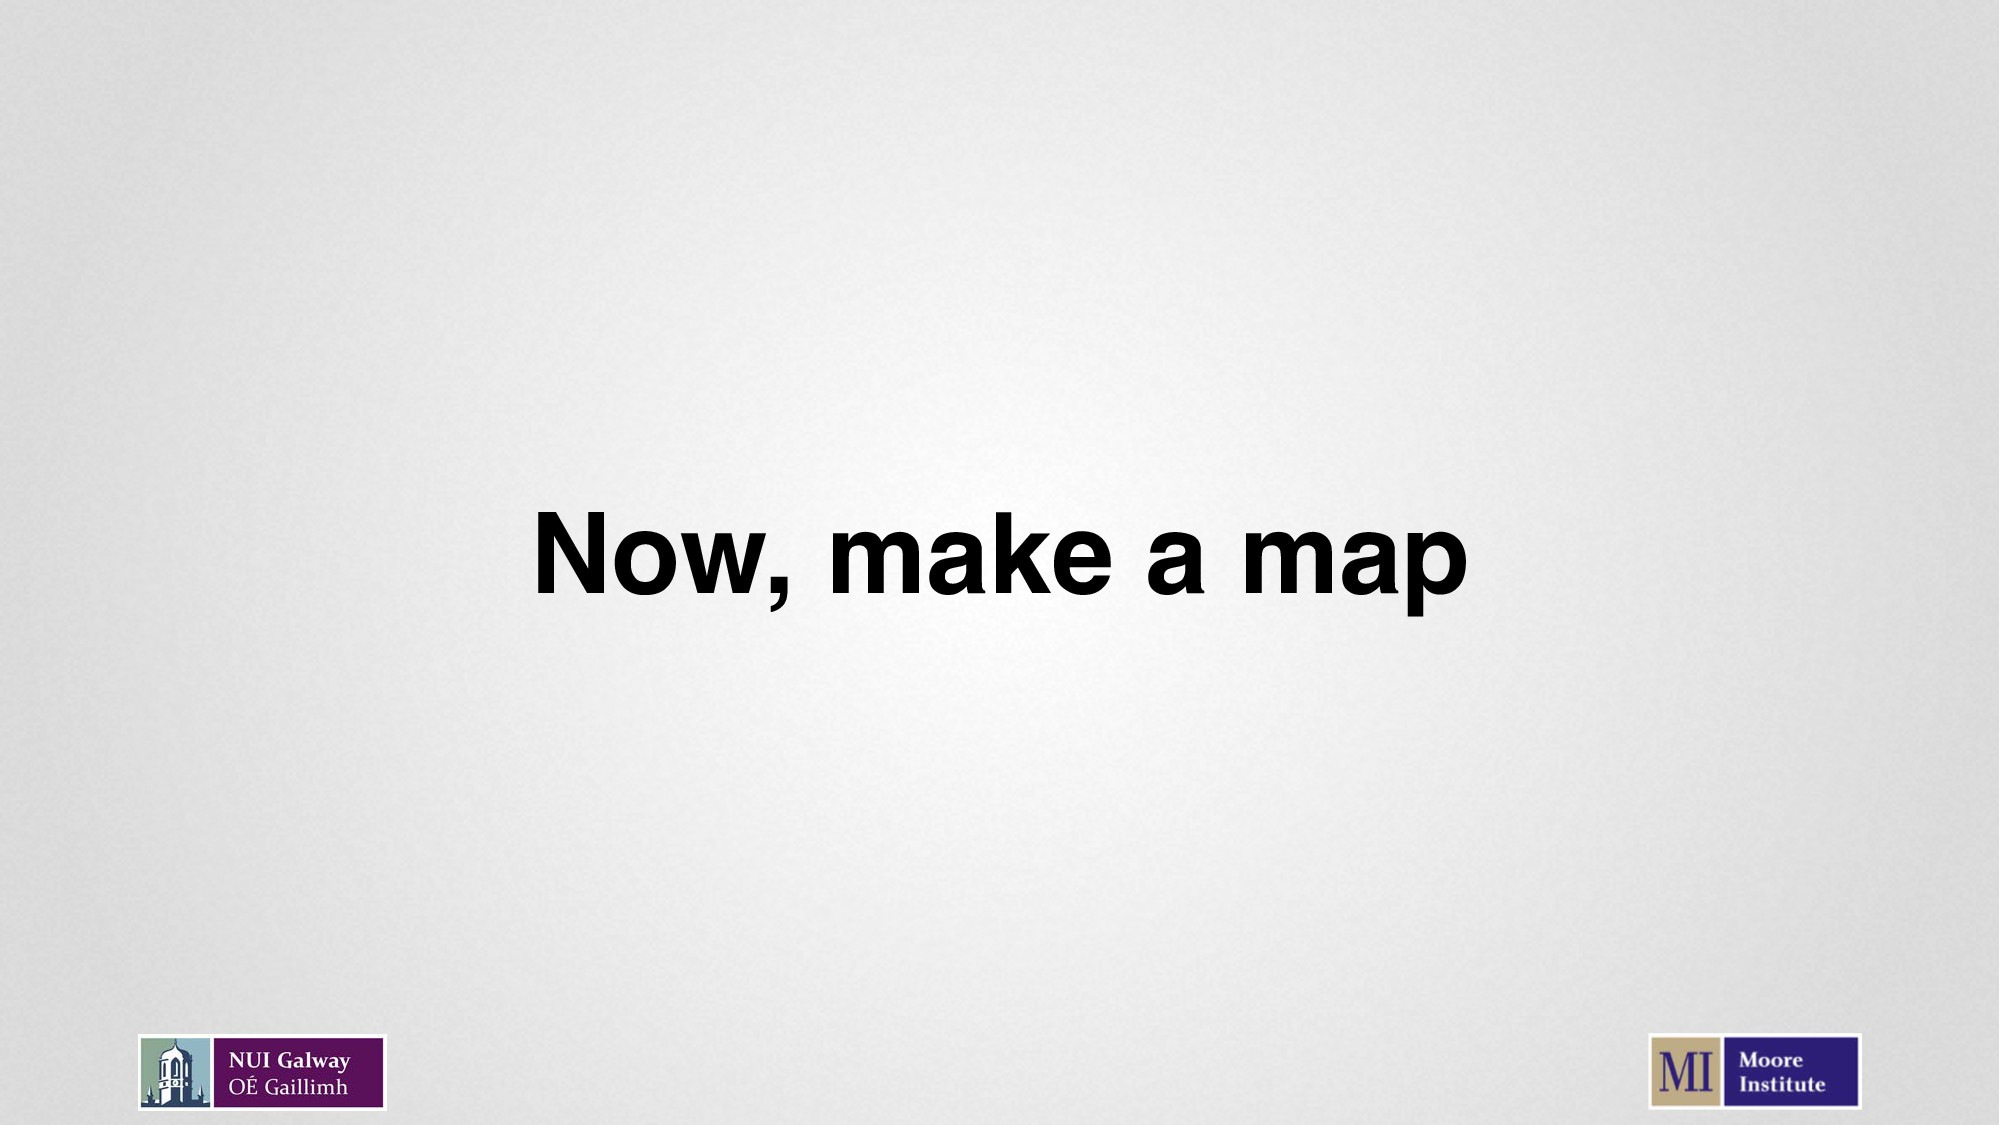 Now, make a map